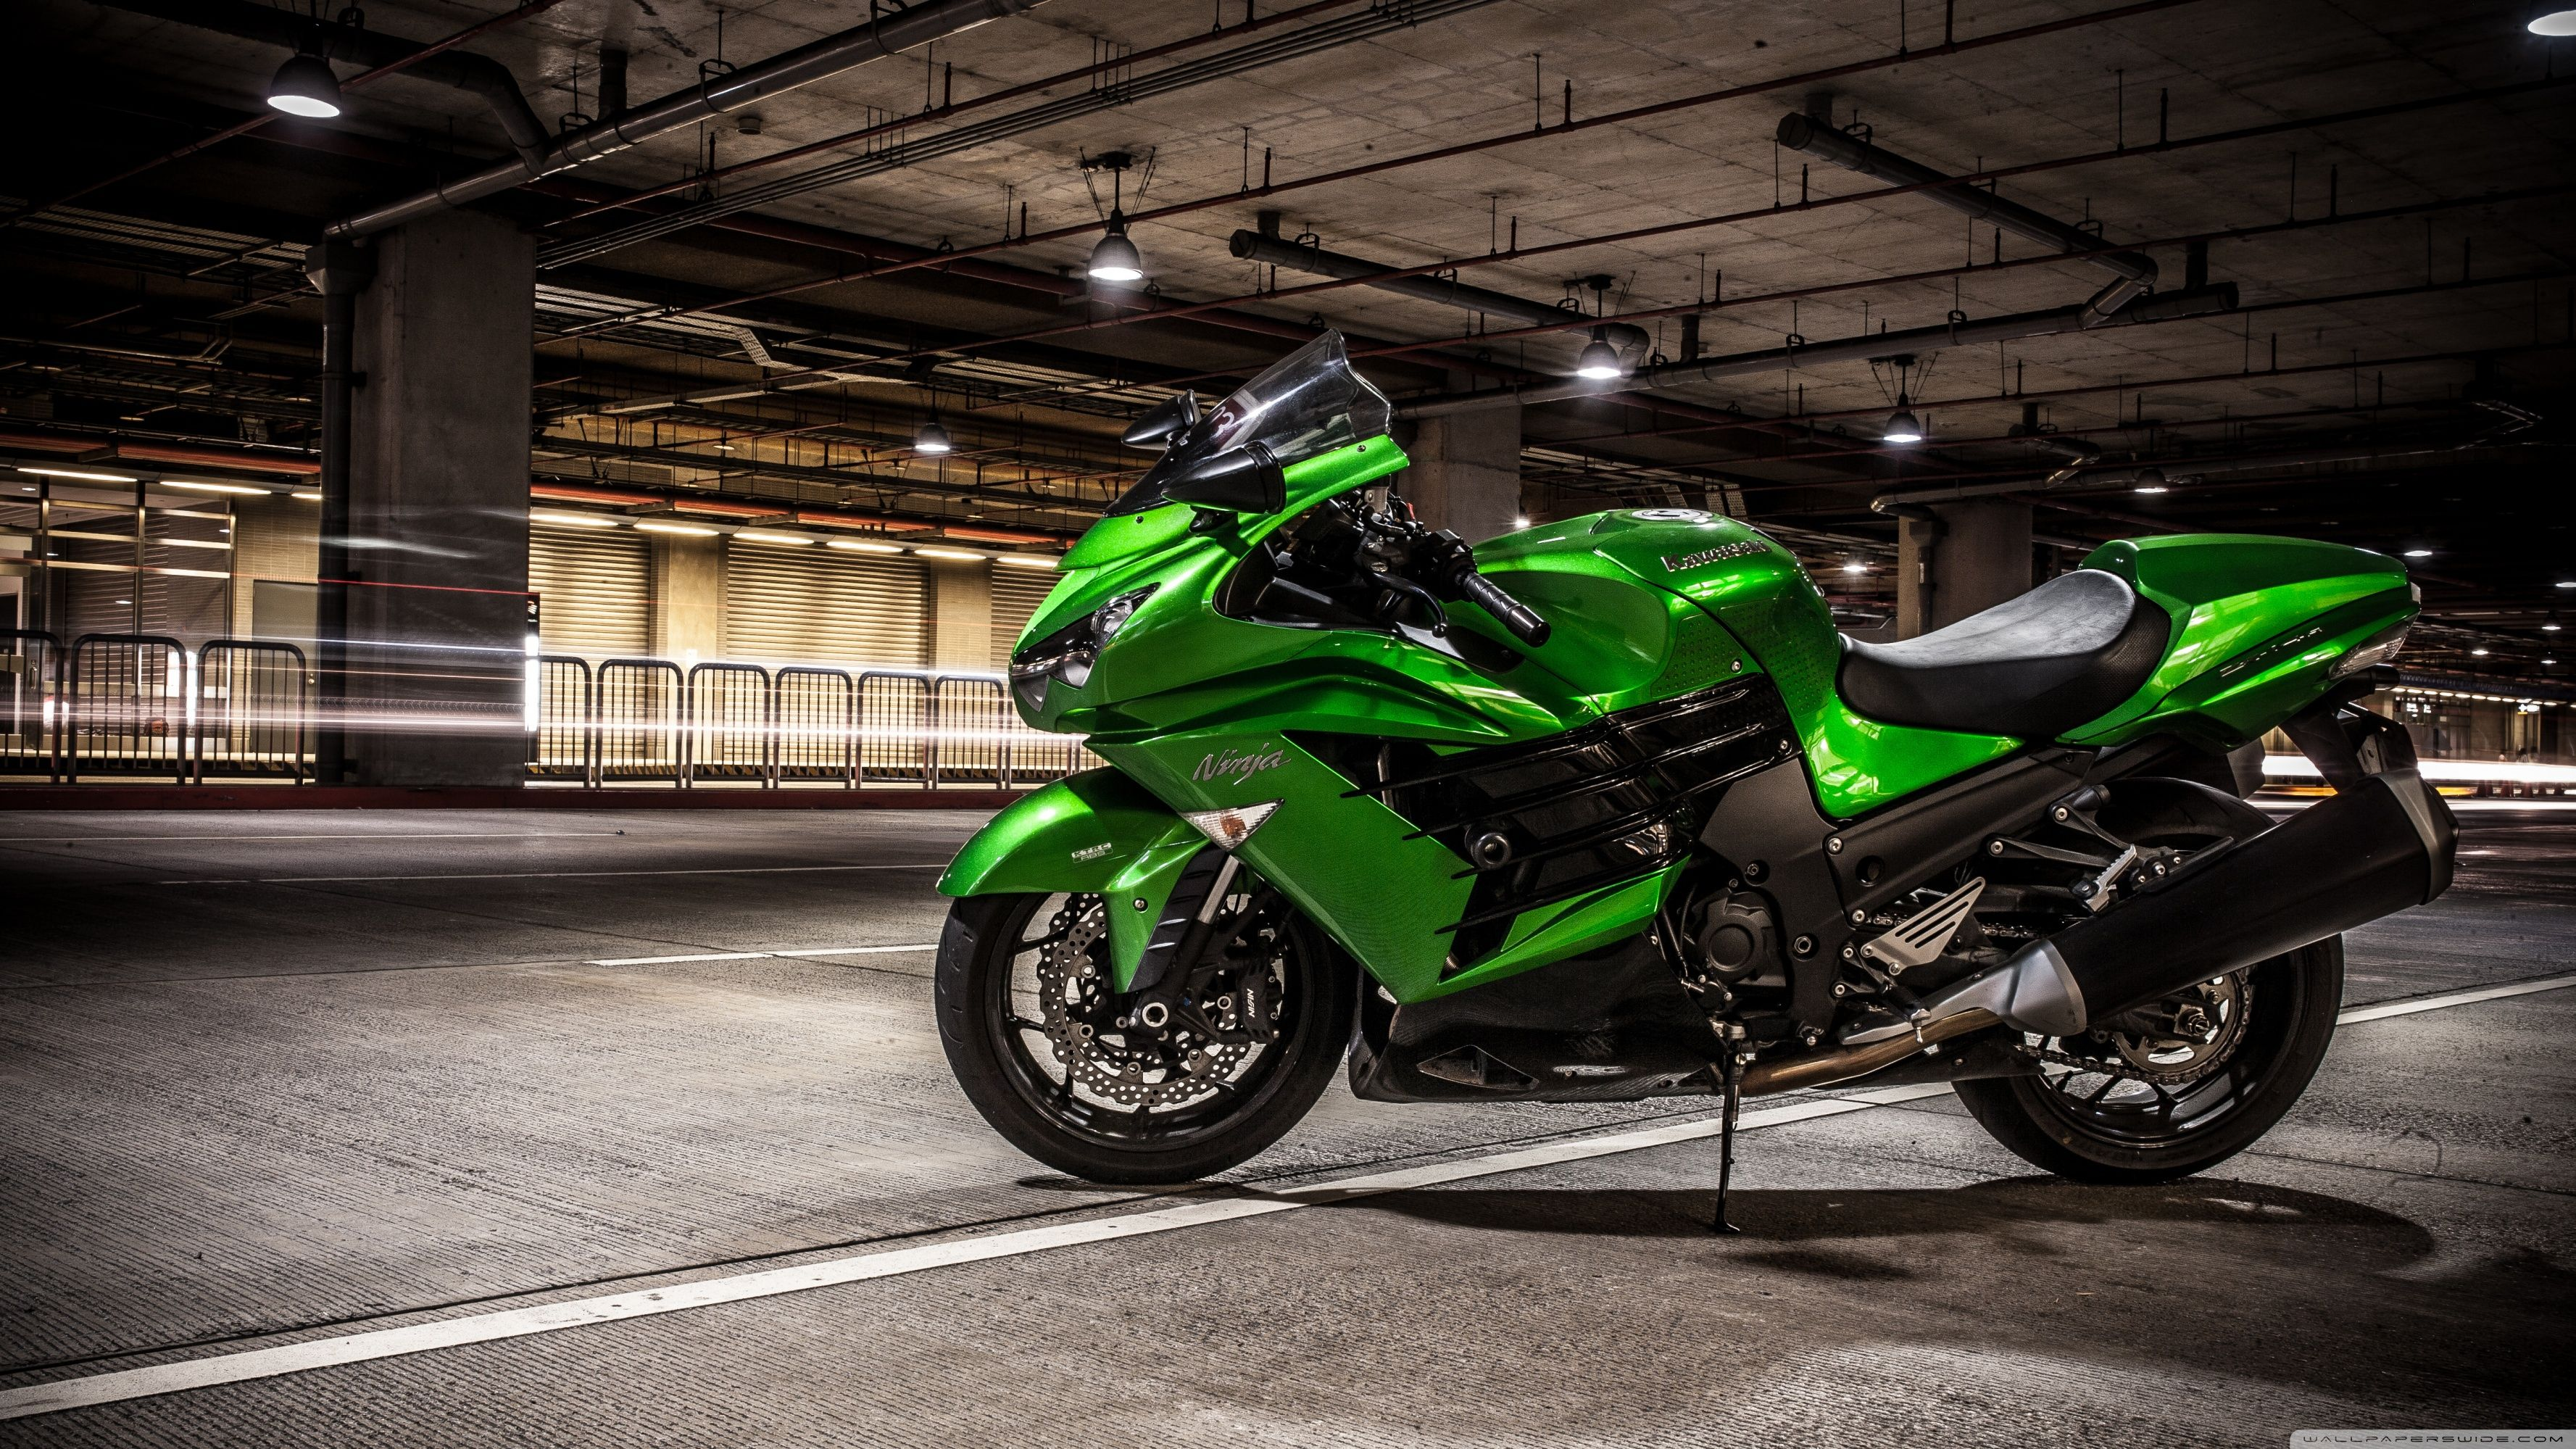 Kawasaki Ninja 400 Wallpapers